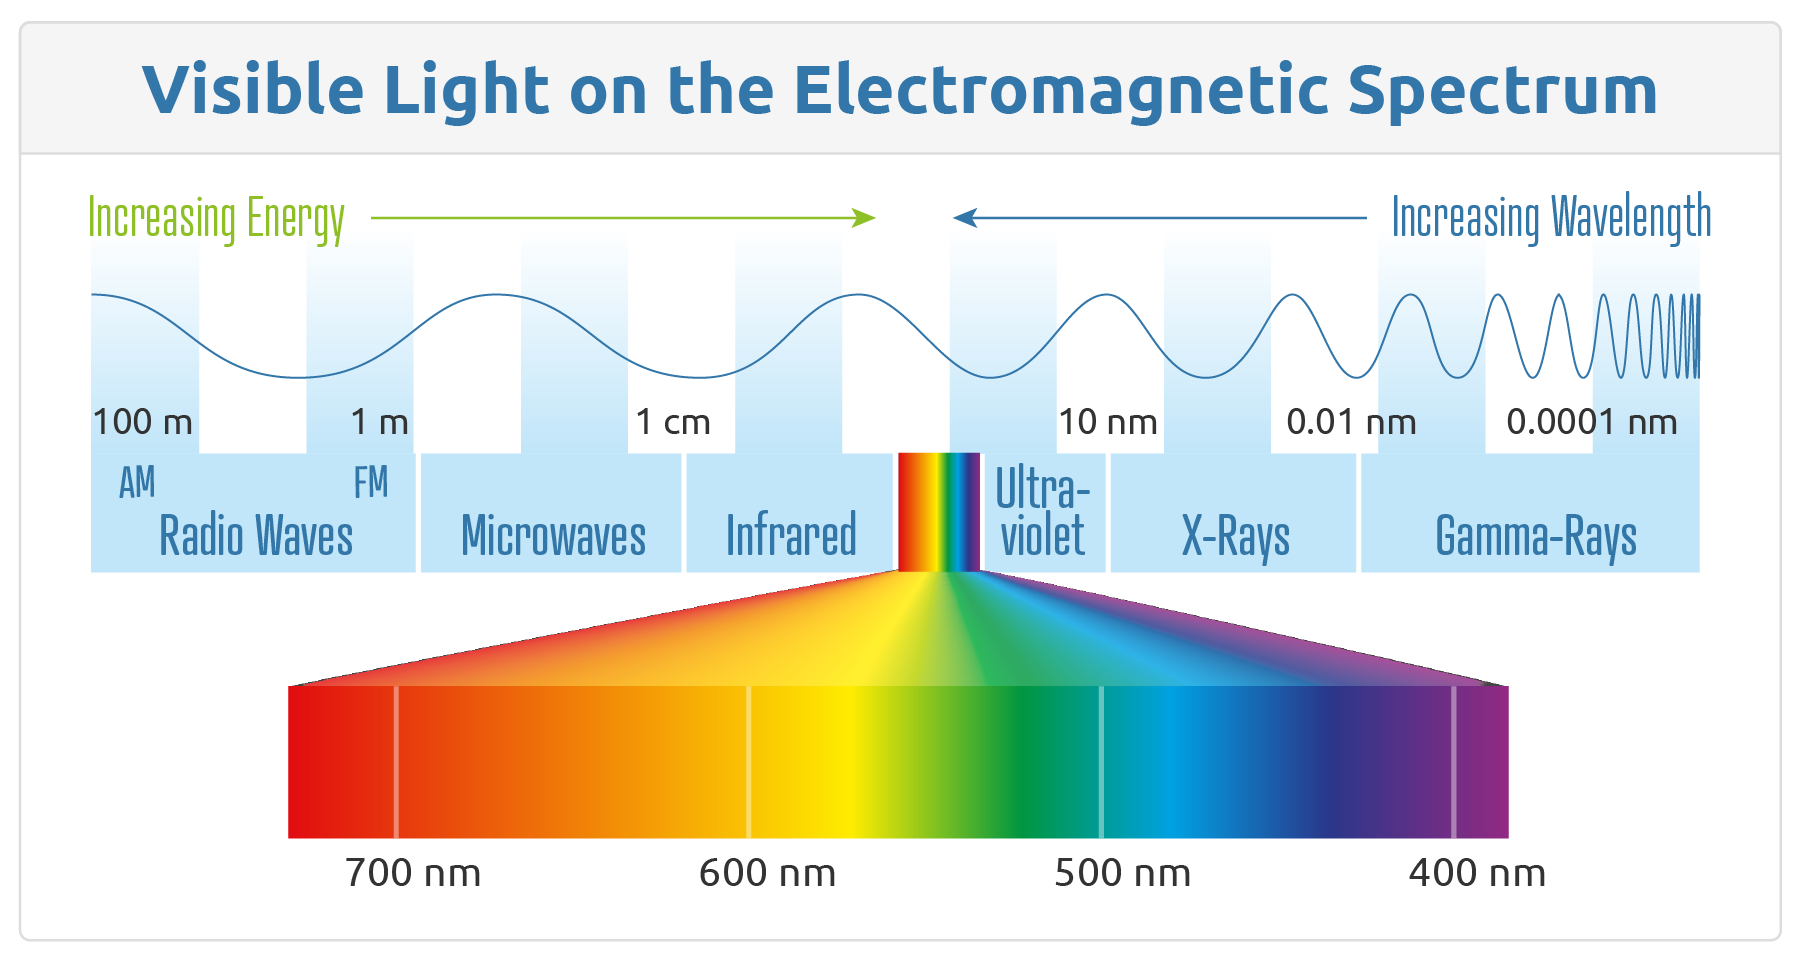 Visible light on the Electromagnetic Spectrum, showing how only a small portion is visible like colors in print or digital applications.